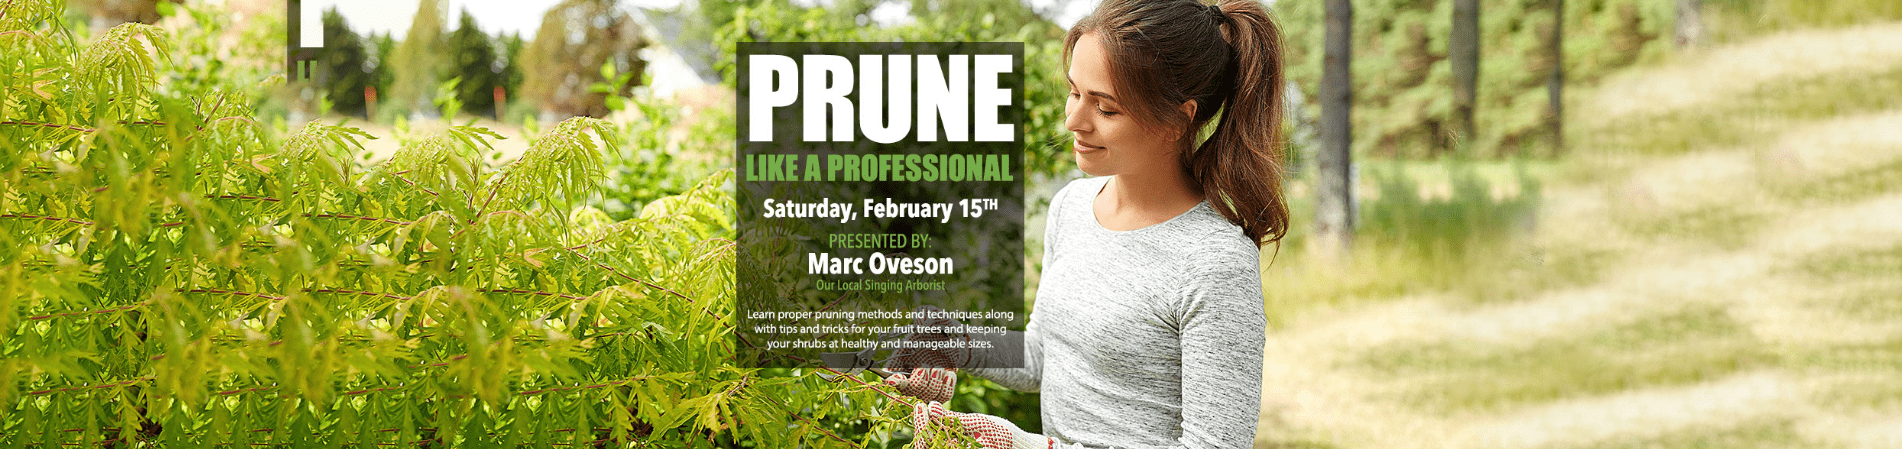 Prune like a Professional at Tri City